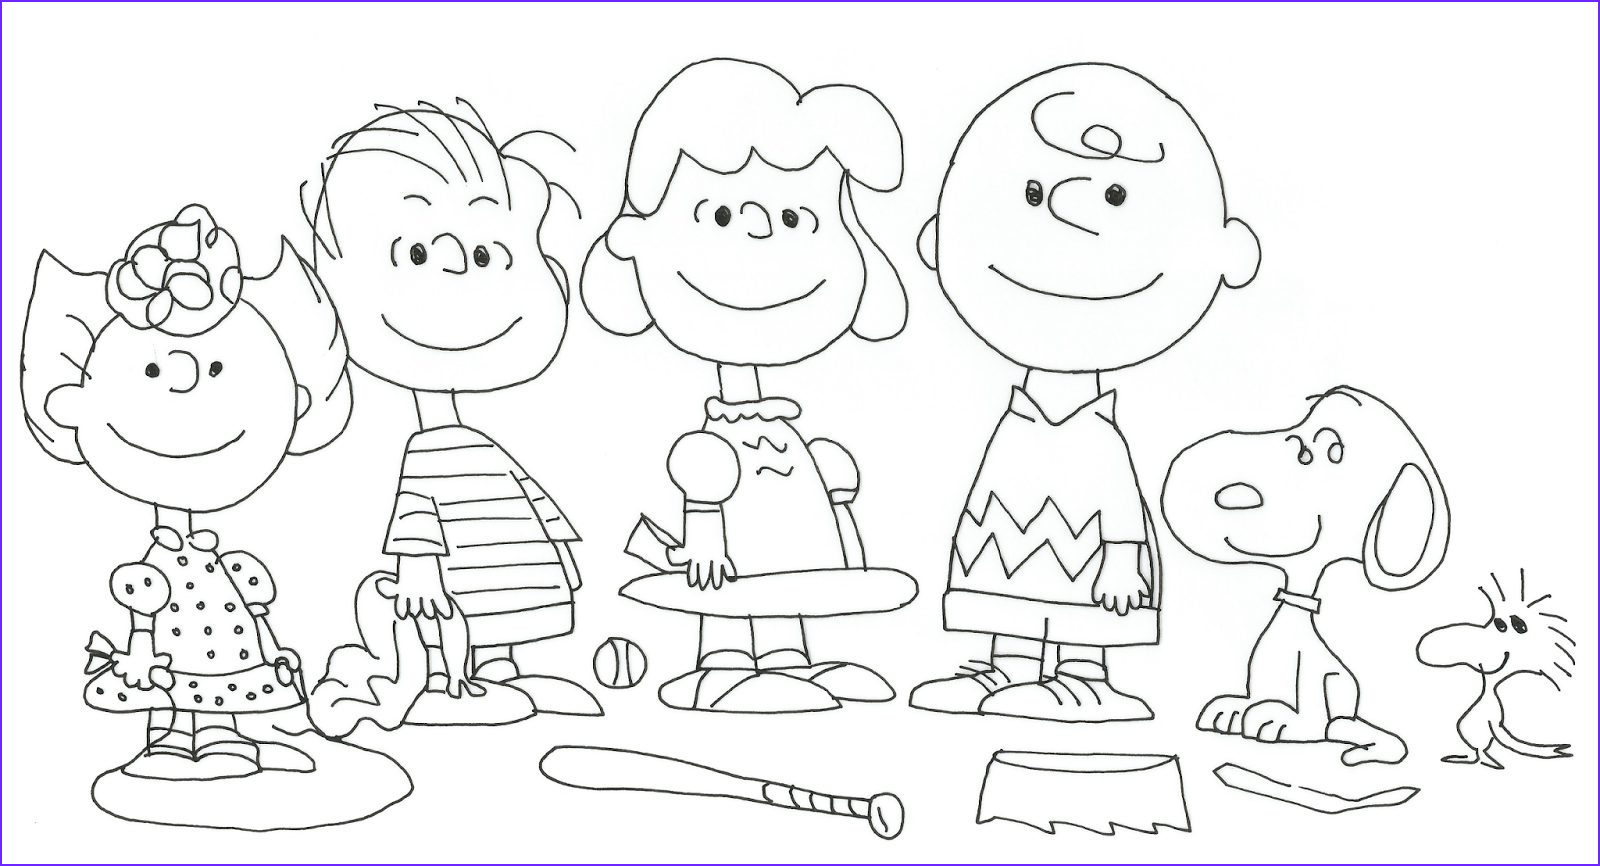 Charlie Brown Coloring Pages New Photography Free Charlie Brown Snoopy and Peanuts Coloring Pages